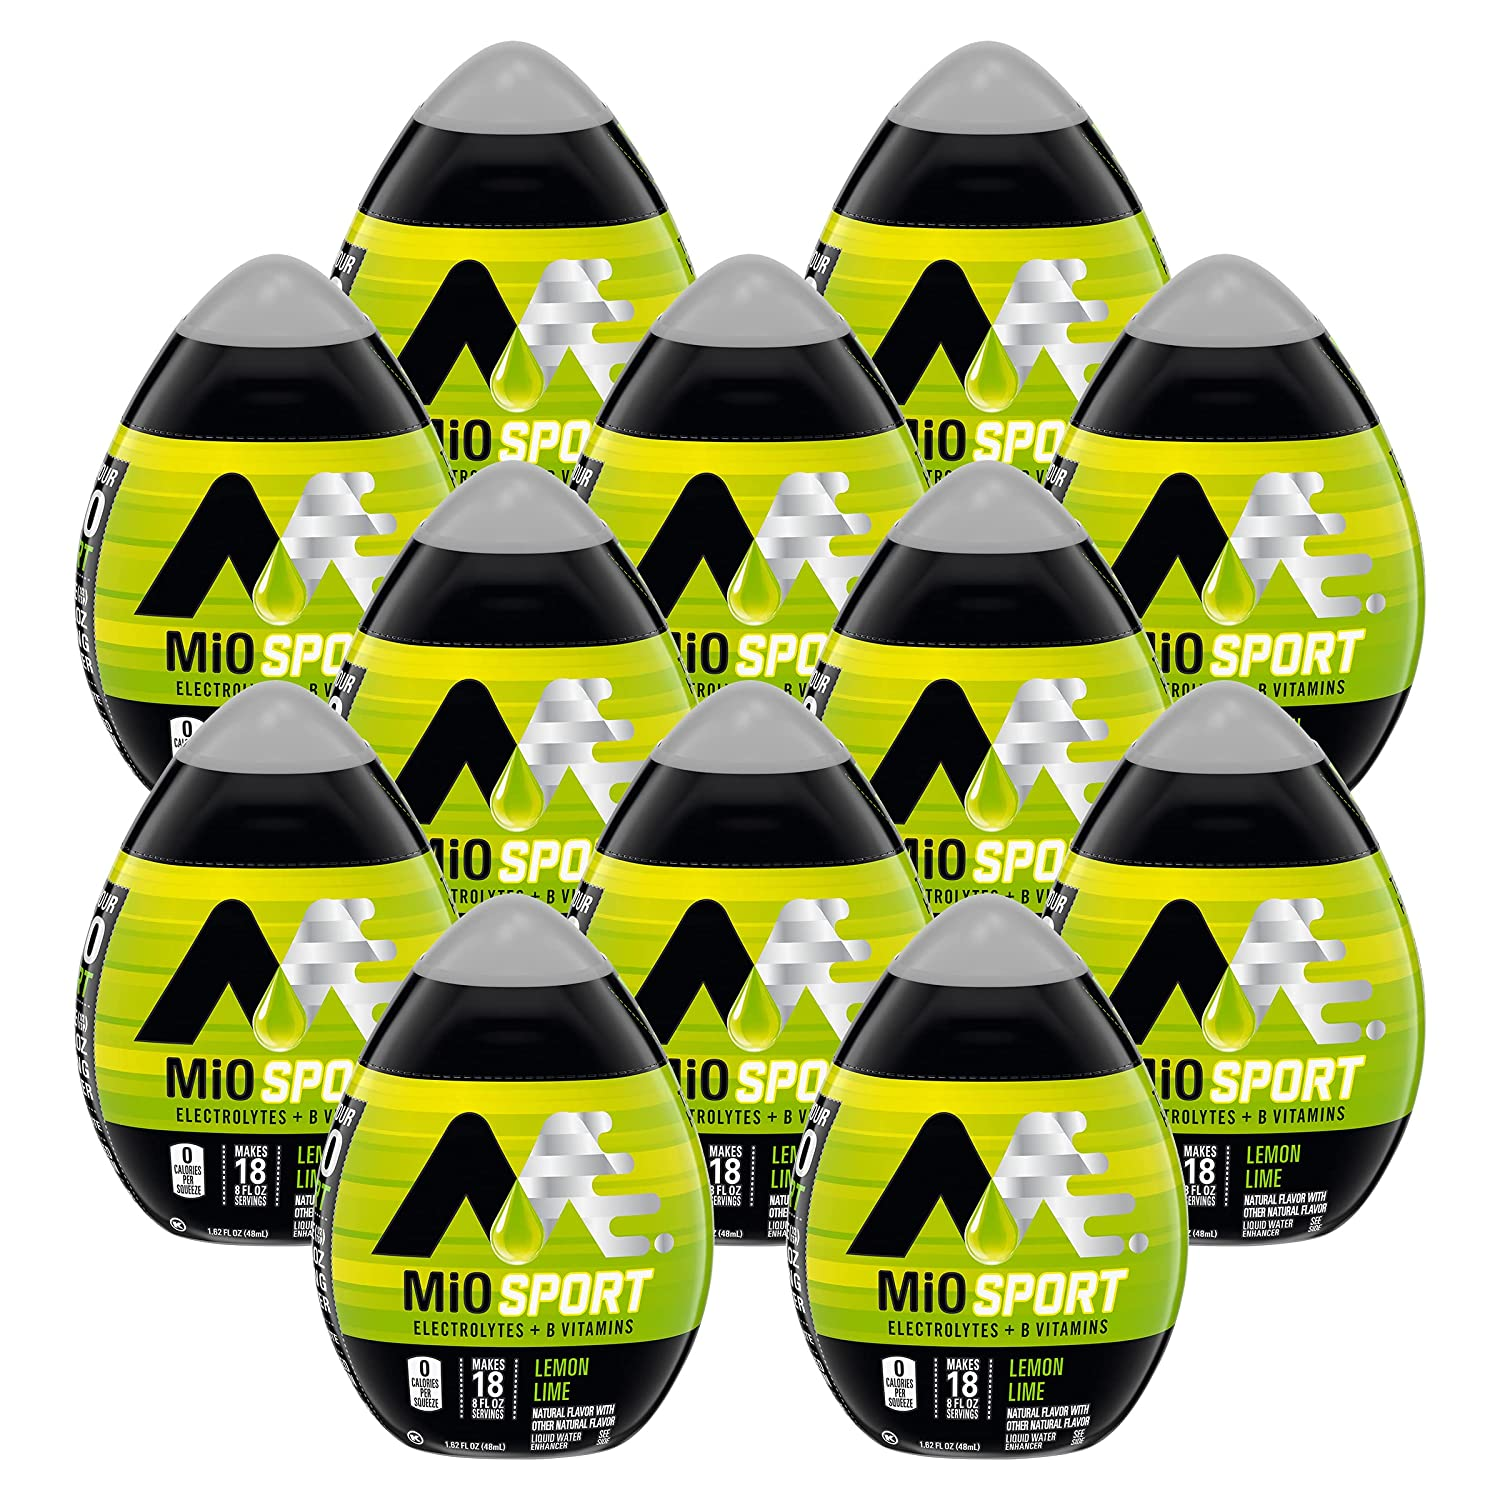 MiO Sport Liquid Water Enhancer, Lemon Lime, Naturally Flavored with Electrolytes & B Vitamins, Caffeine Free, Resealable Bottle, 1.62 fl oz Bottle (Pack of 12)